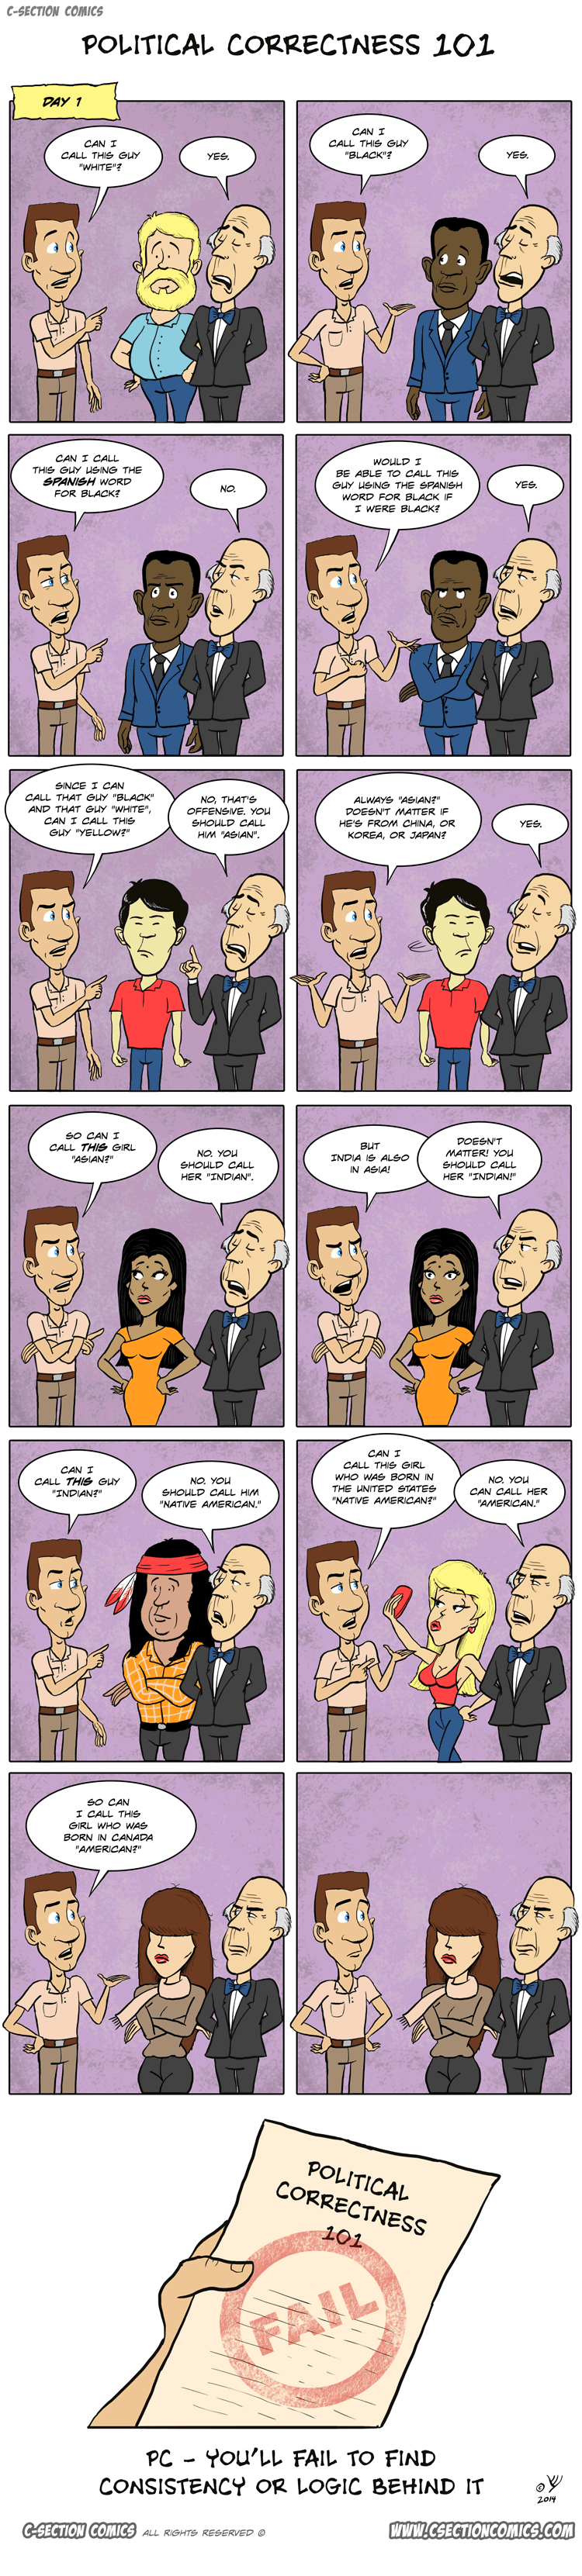 comic-2014-01-02-politically-correctness-101-256c.png